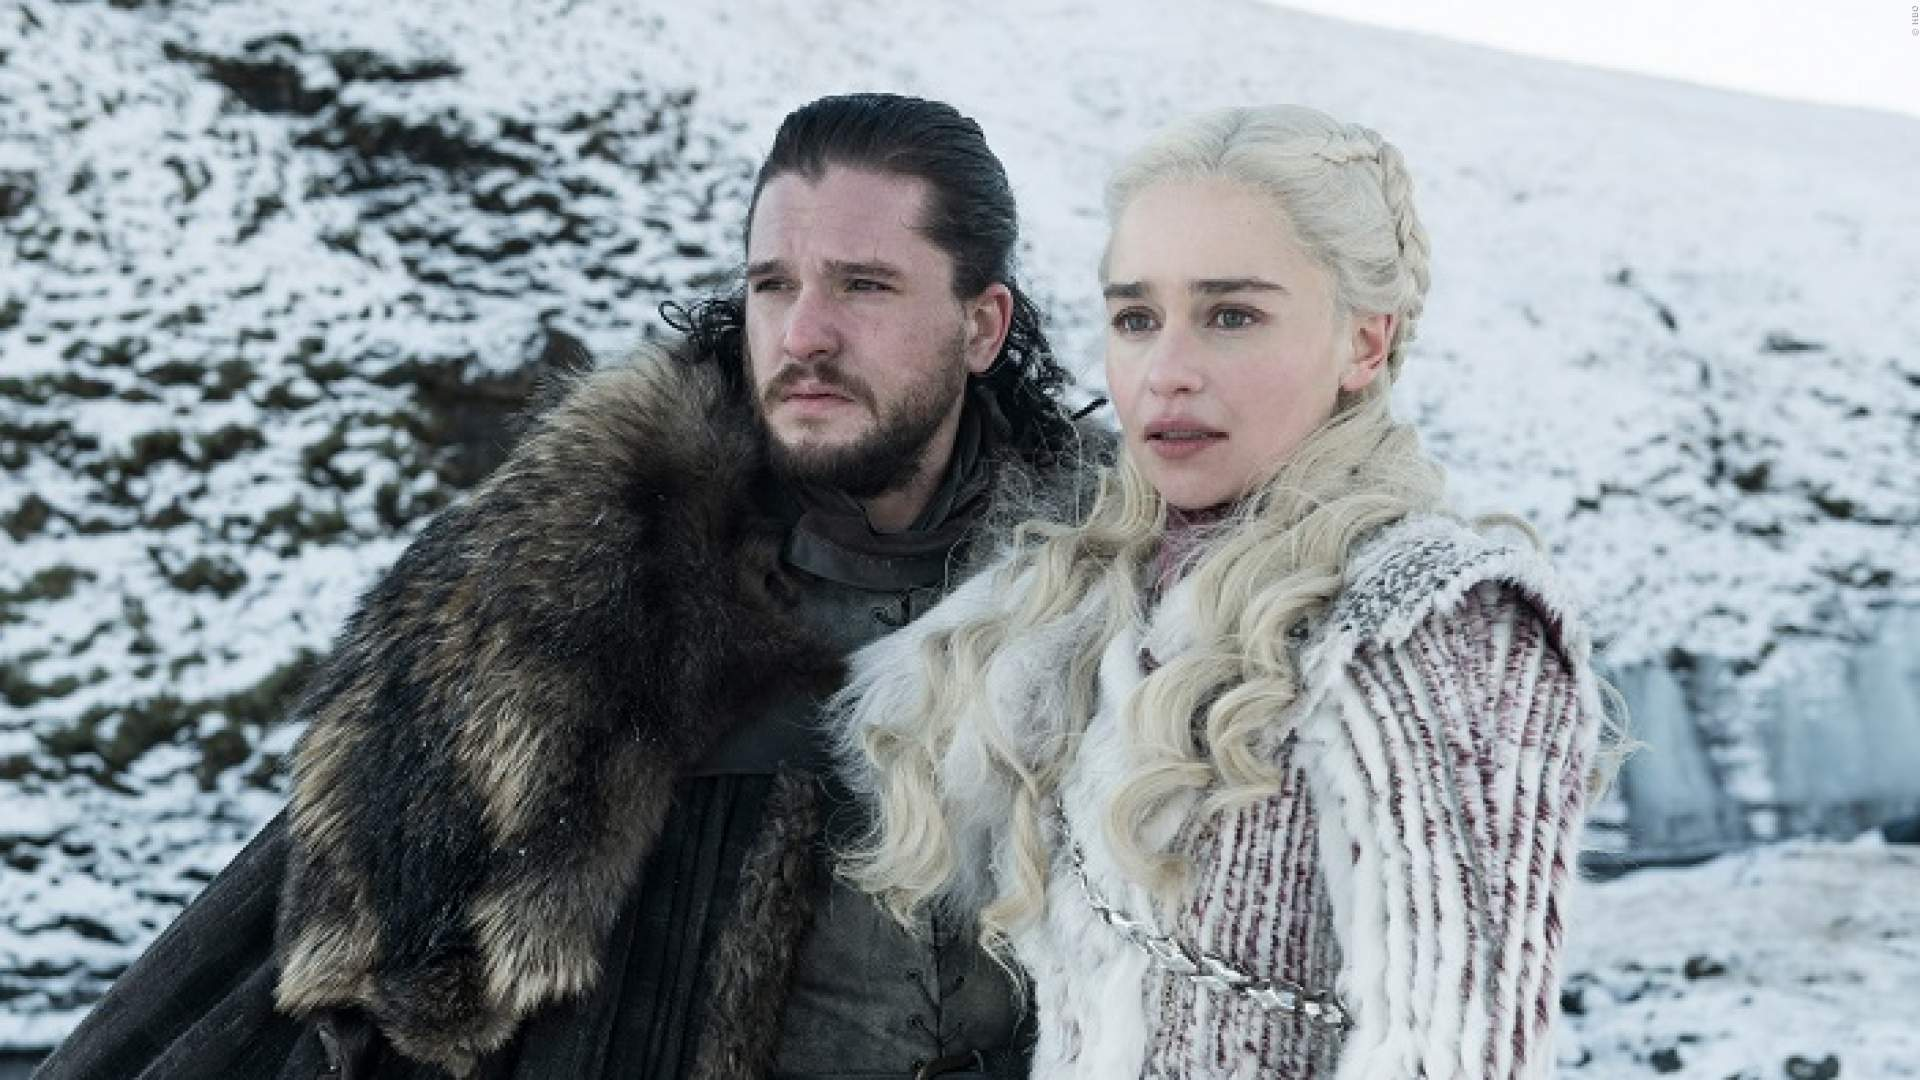 SHIT-STORM: Das sagt der Sender zur Kritik an 'Game Of Thrones' Staffel 8